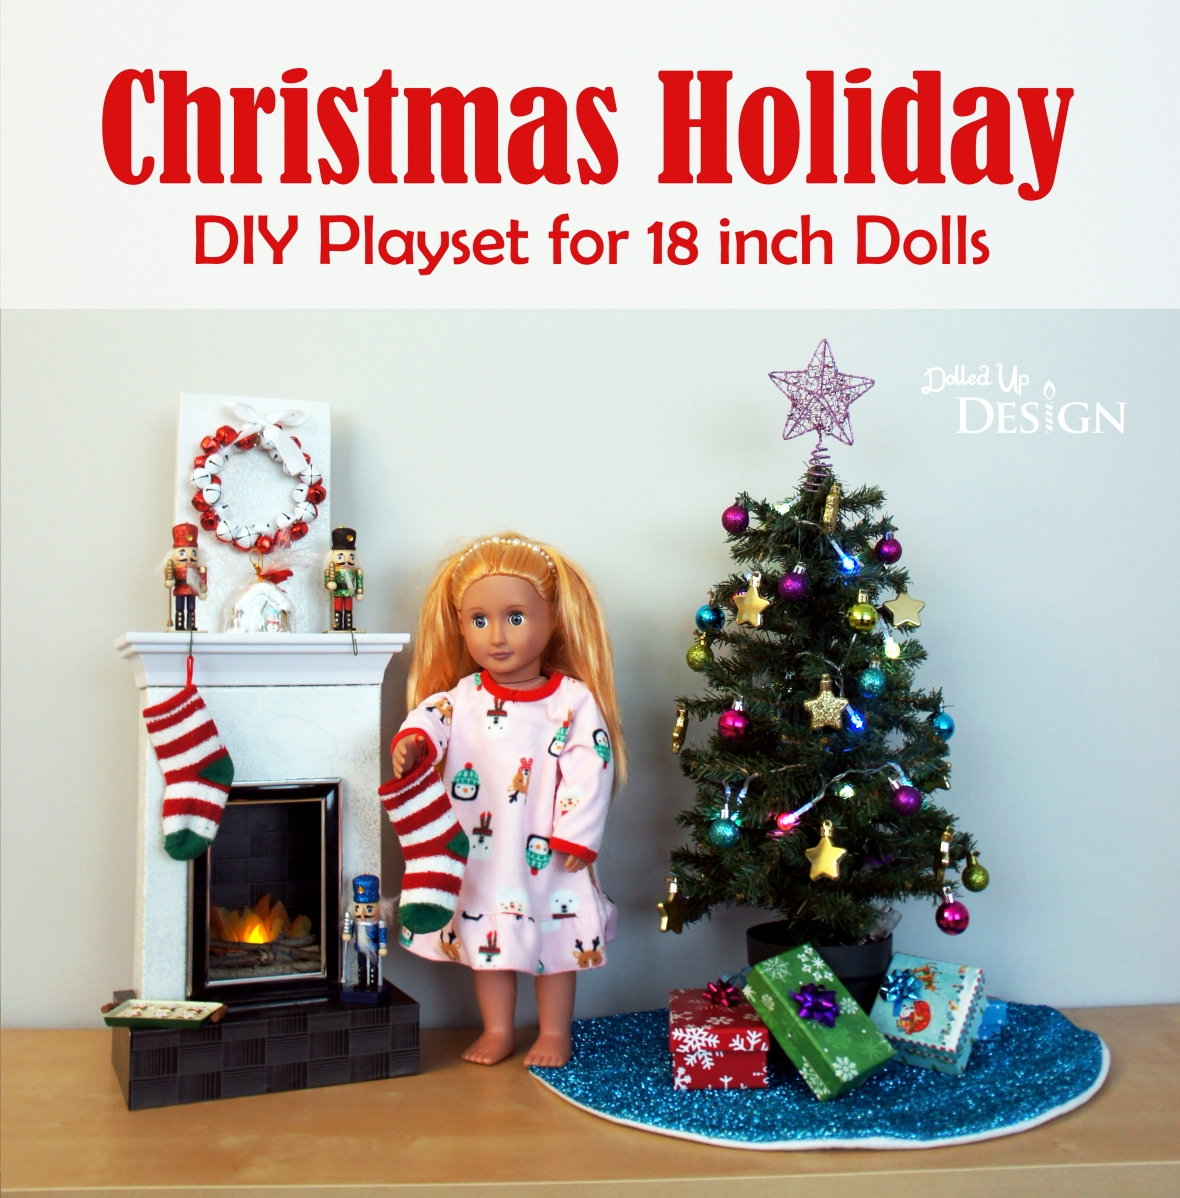 Christmas Holiday DIY Playset for 18 inch Dolls